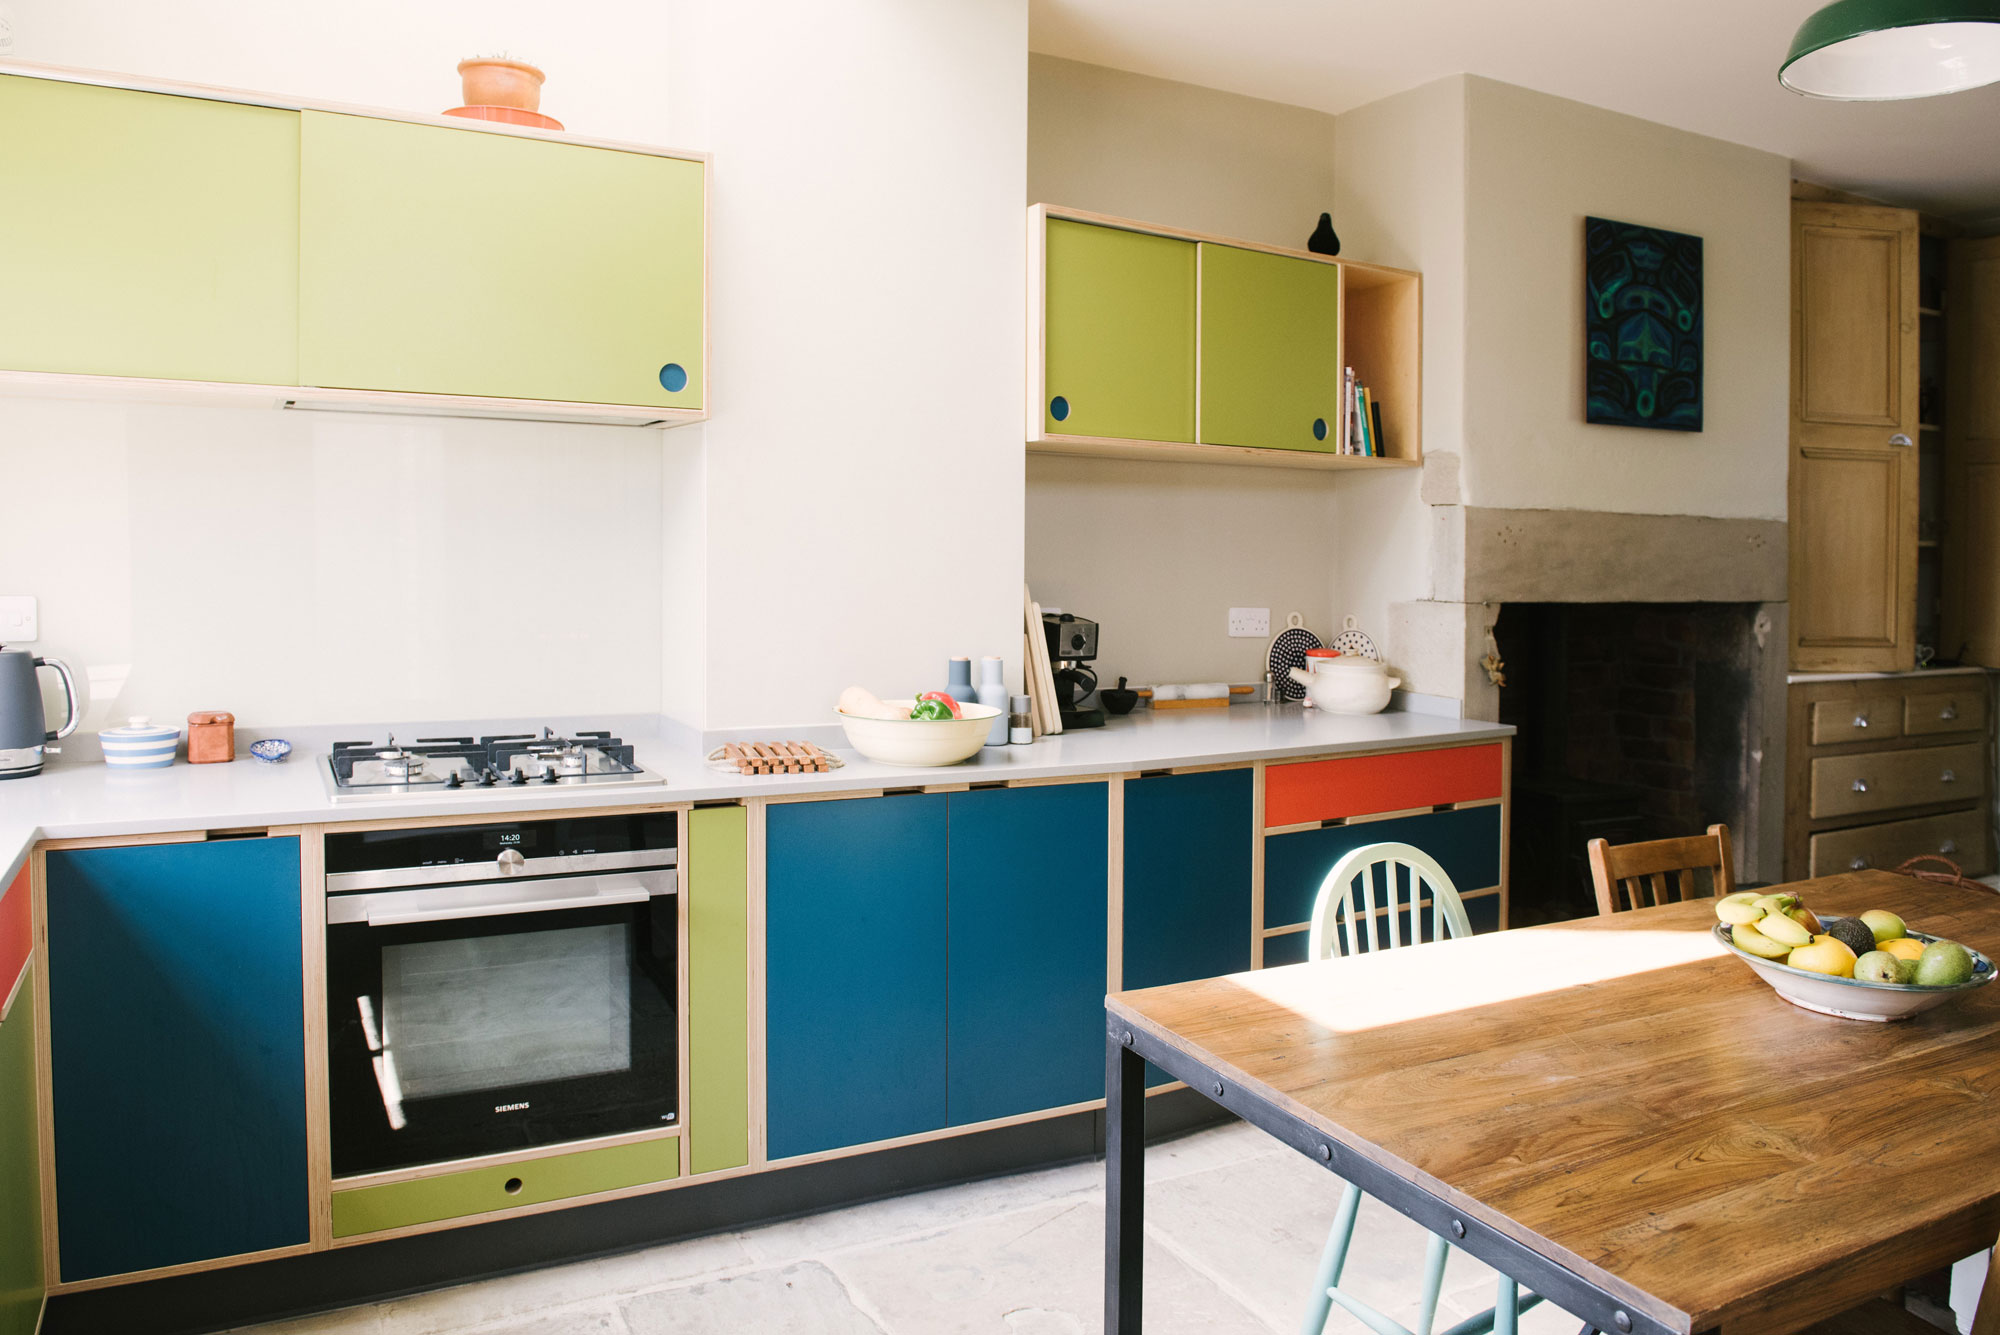 Cooking Area of Green Orange & Blue Plywood Kitchen